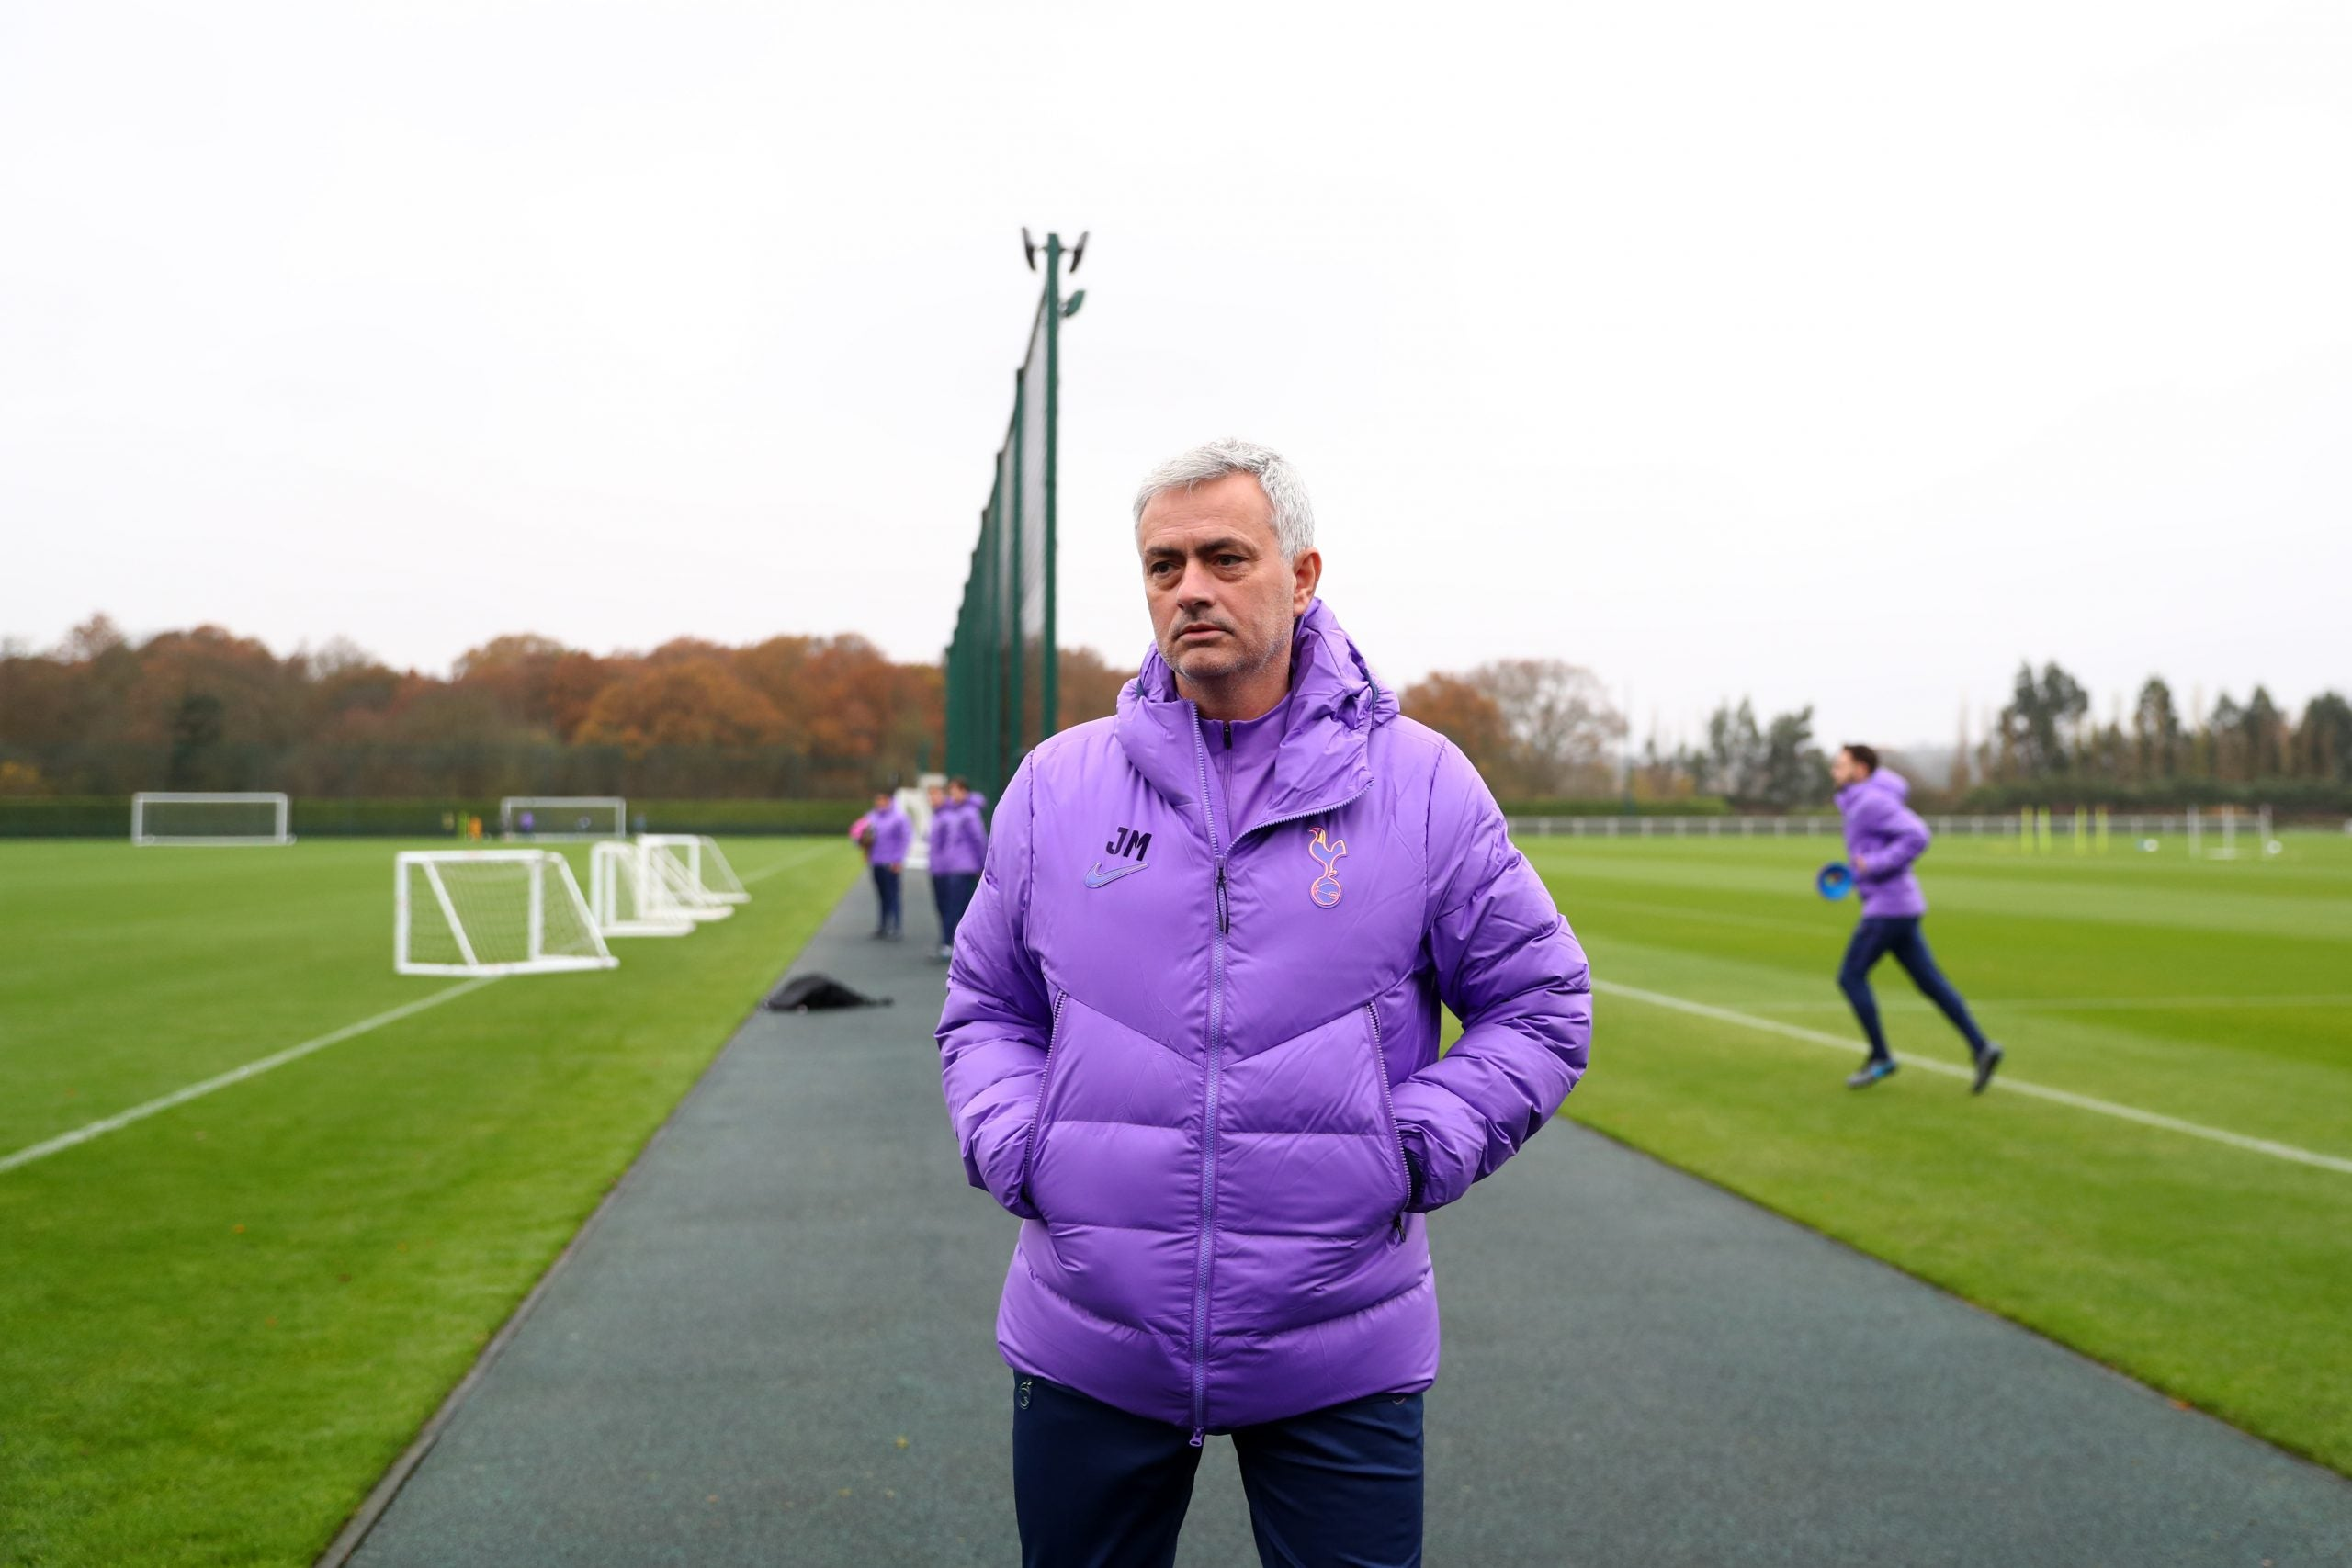 For José Mourinho the art of management is one part detail and two parts salesmanship